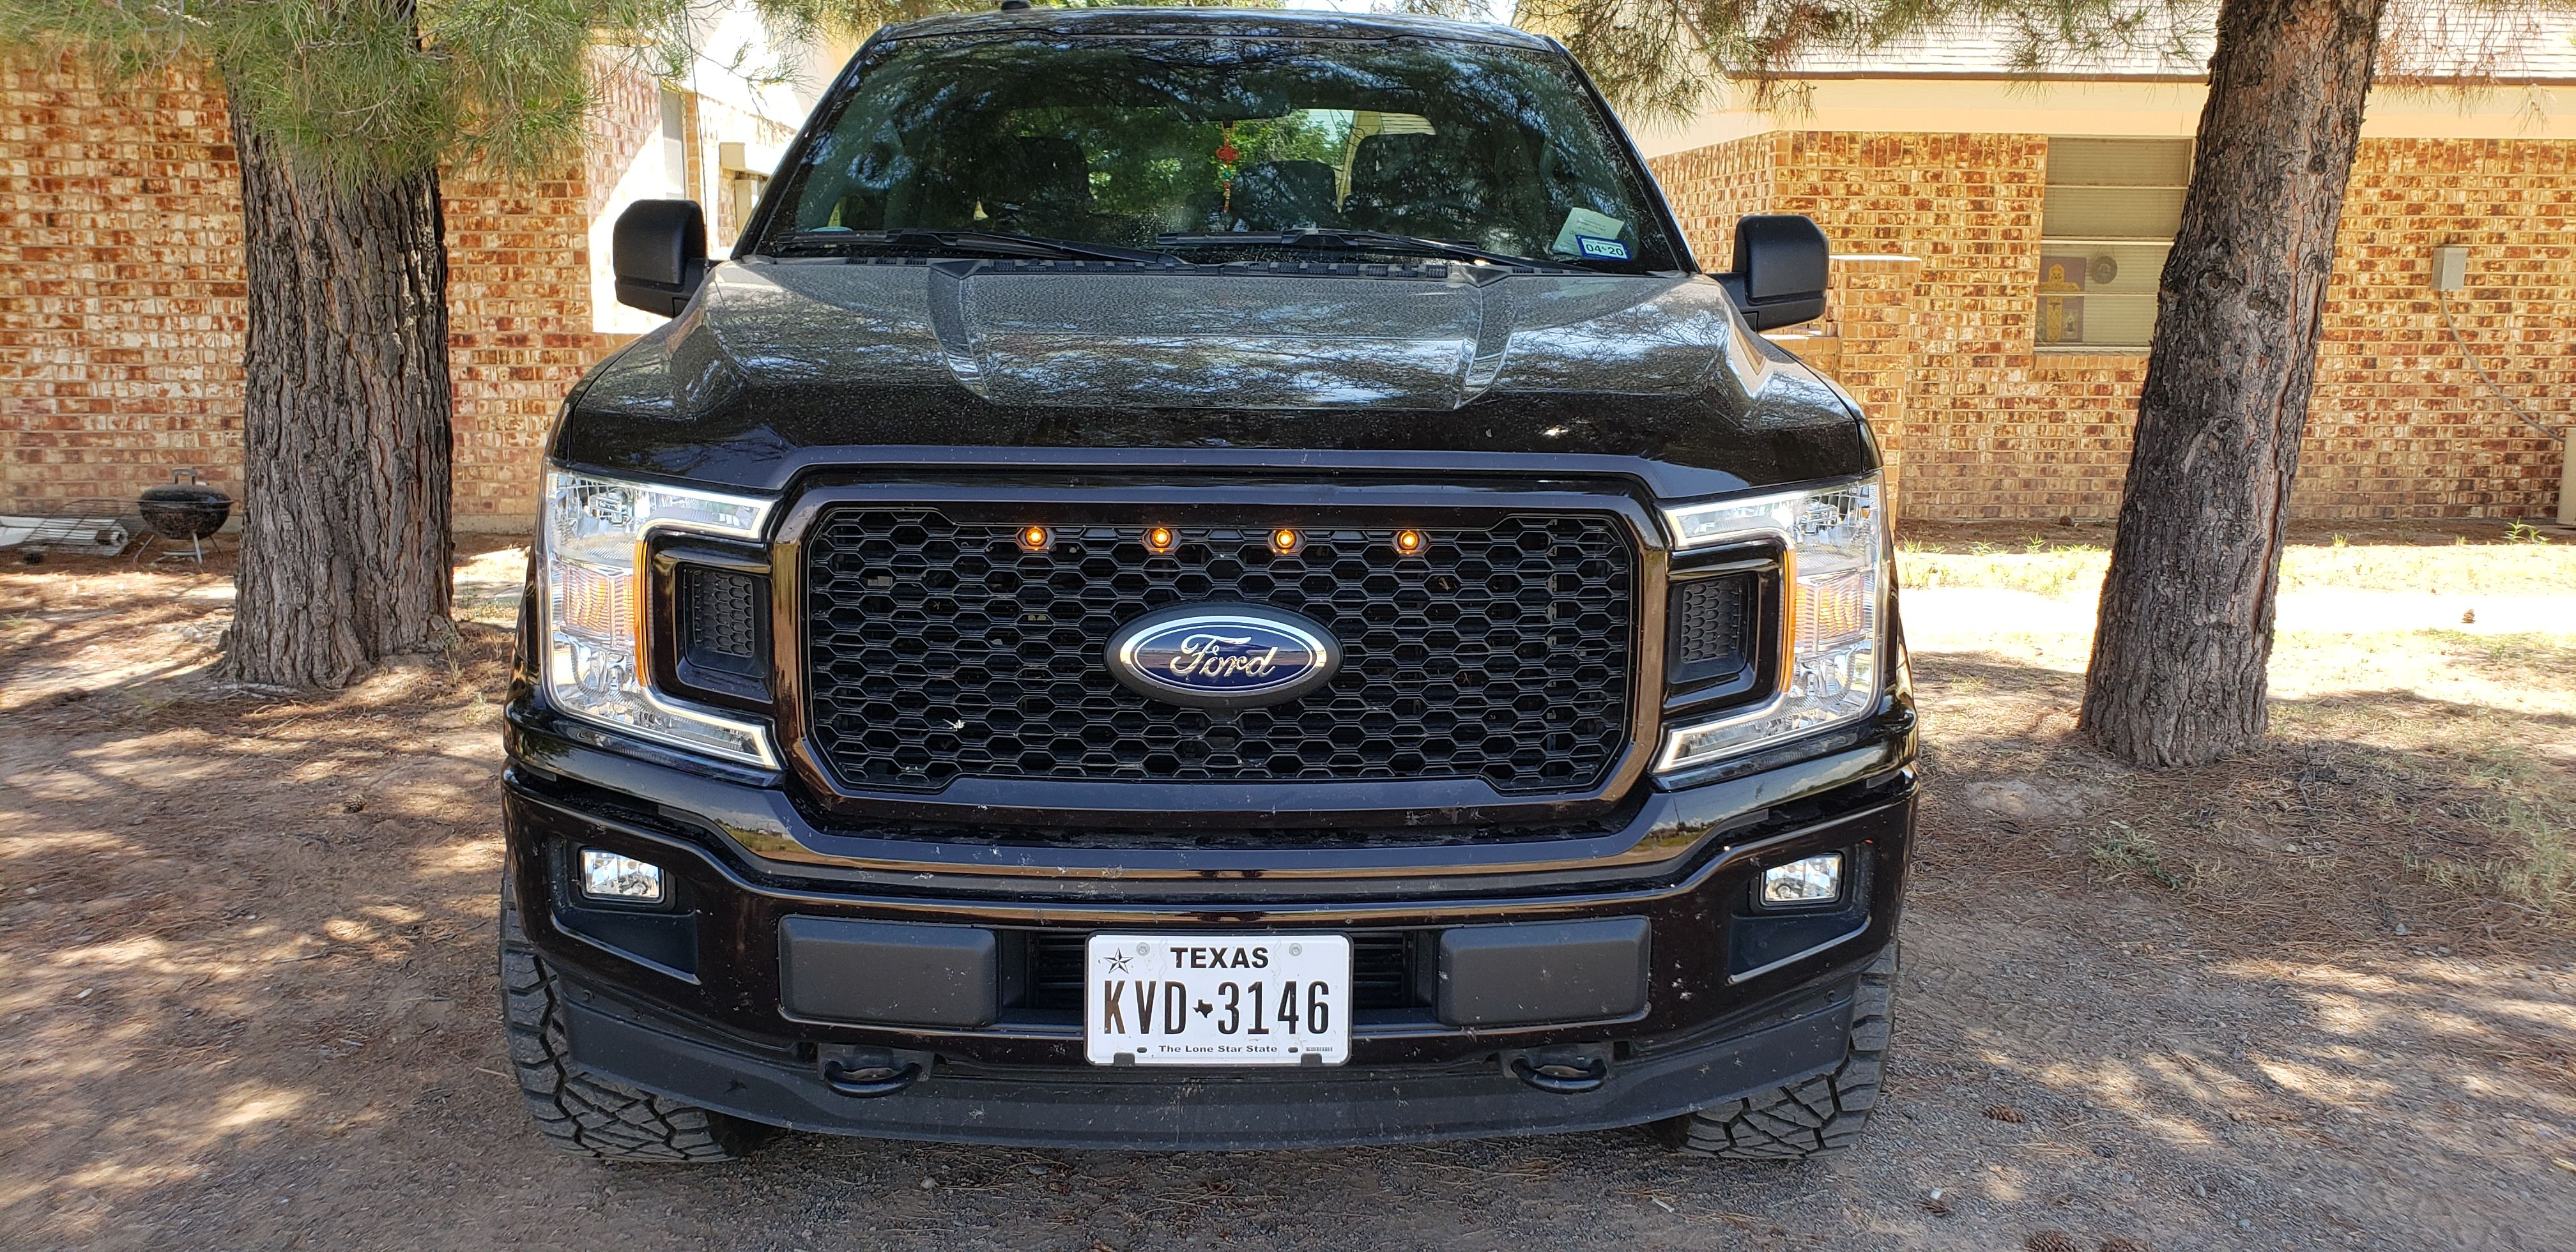 2018 2020 F150 With Stx Or Lariat Special Edition Grille Custom Auto Works Raptor Style Led Amber Grille Light Kit Rapl 2018stxse F150 Custom F150 Grilles